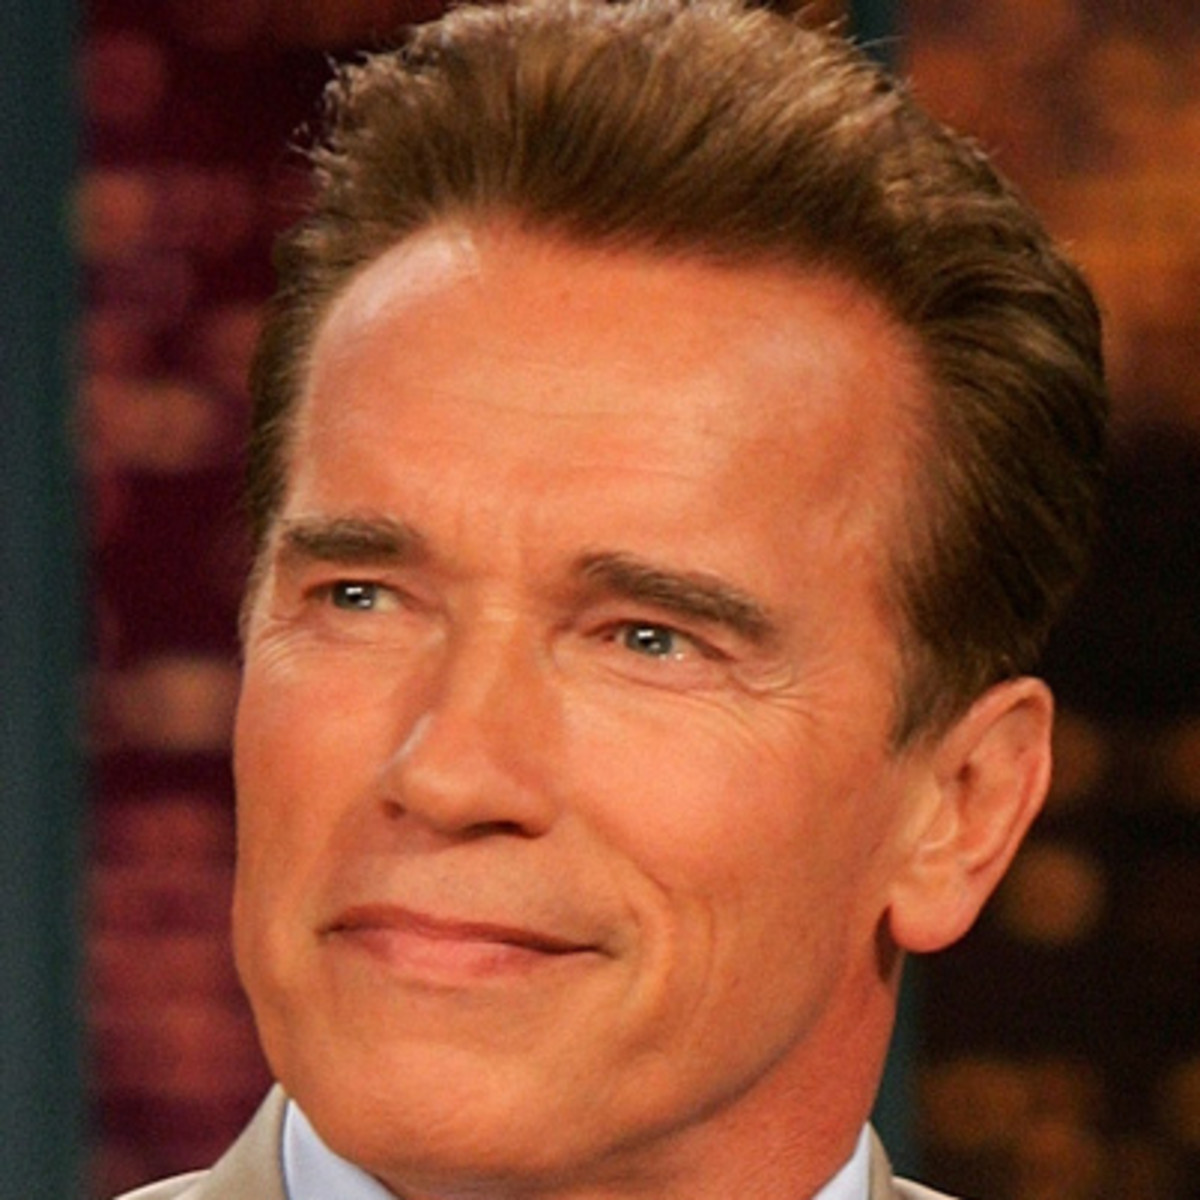 Arnold Schwarzenegger Also Tells His Fans To Remain At Home And Listen To The Experts - Check Him Out Having The Best Time With His 'Mini Horses'